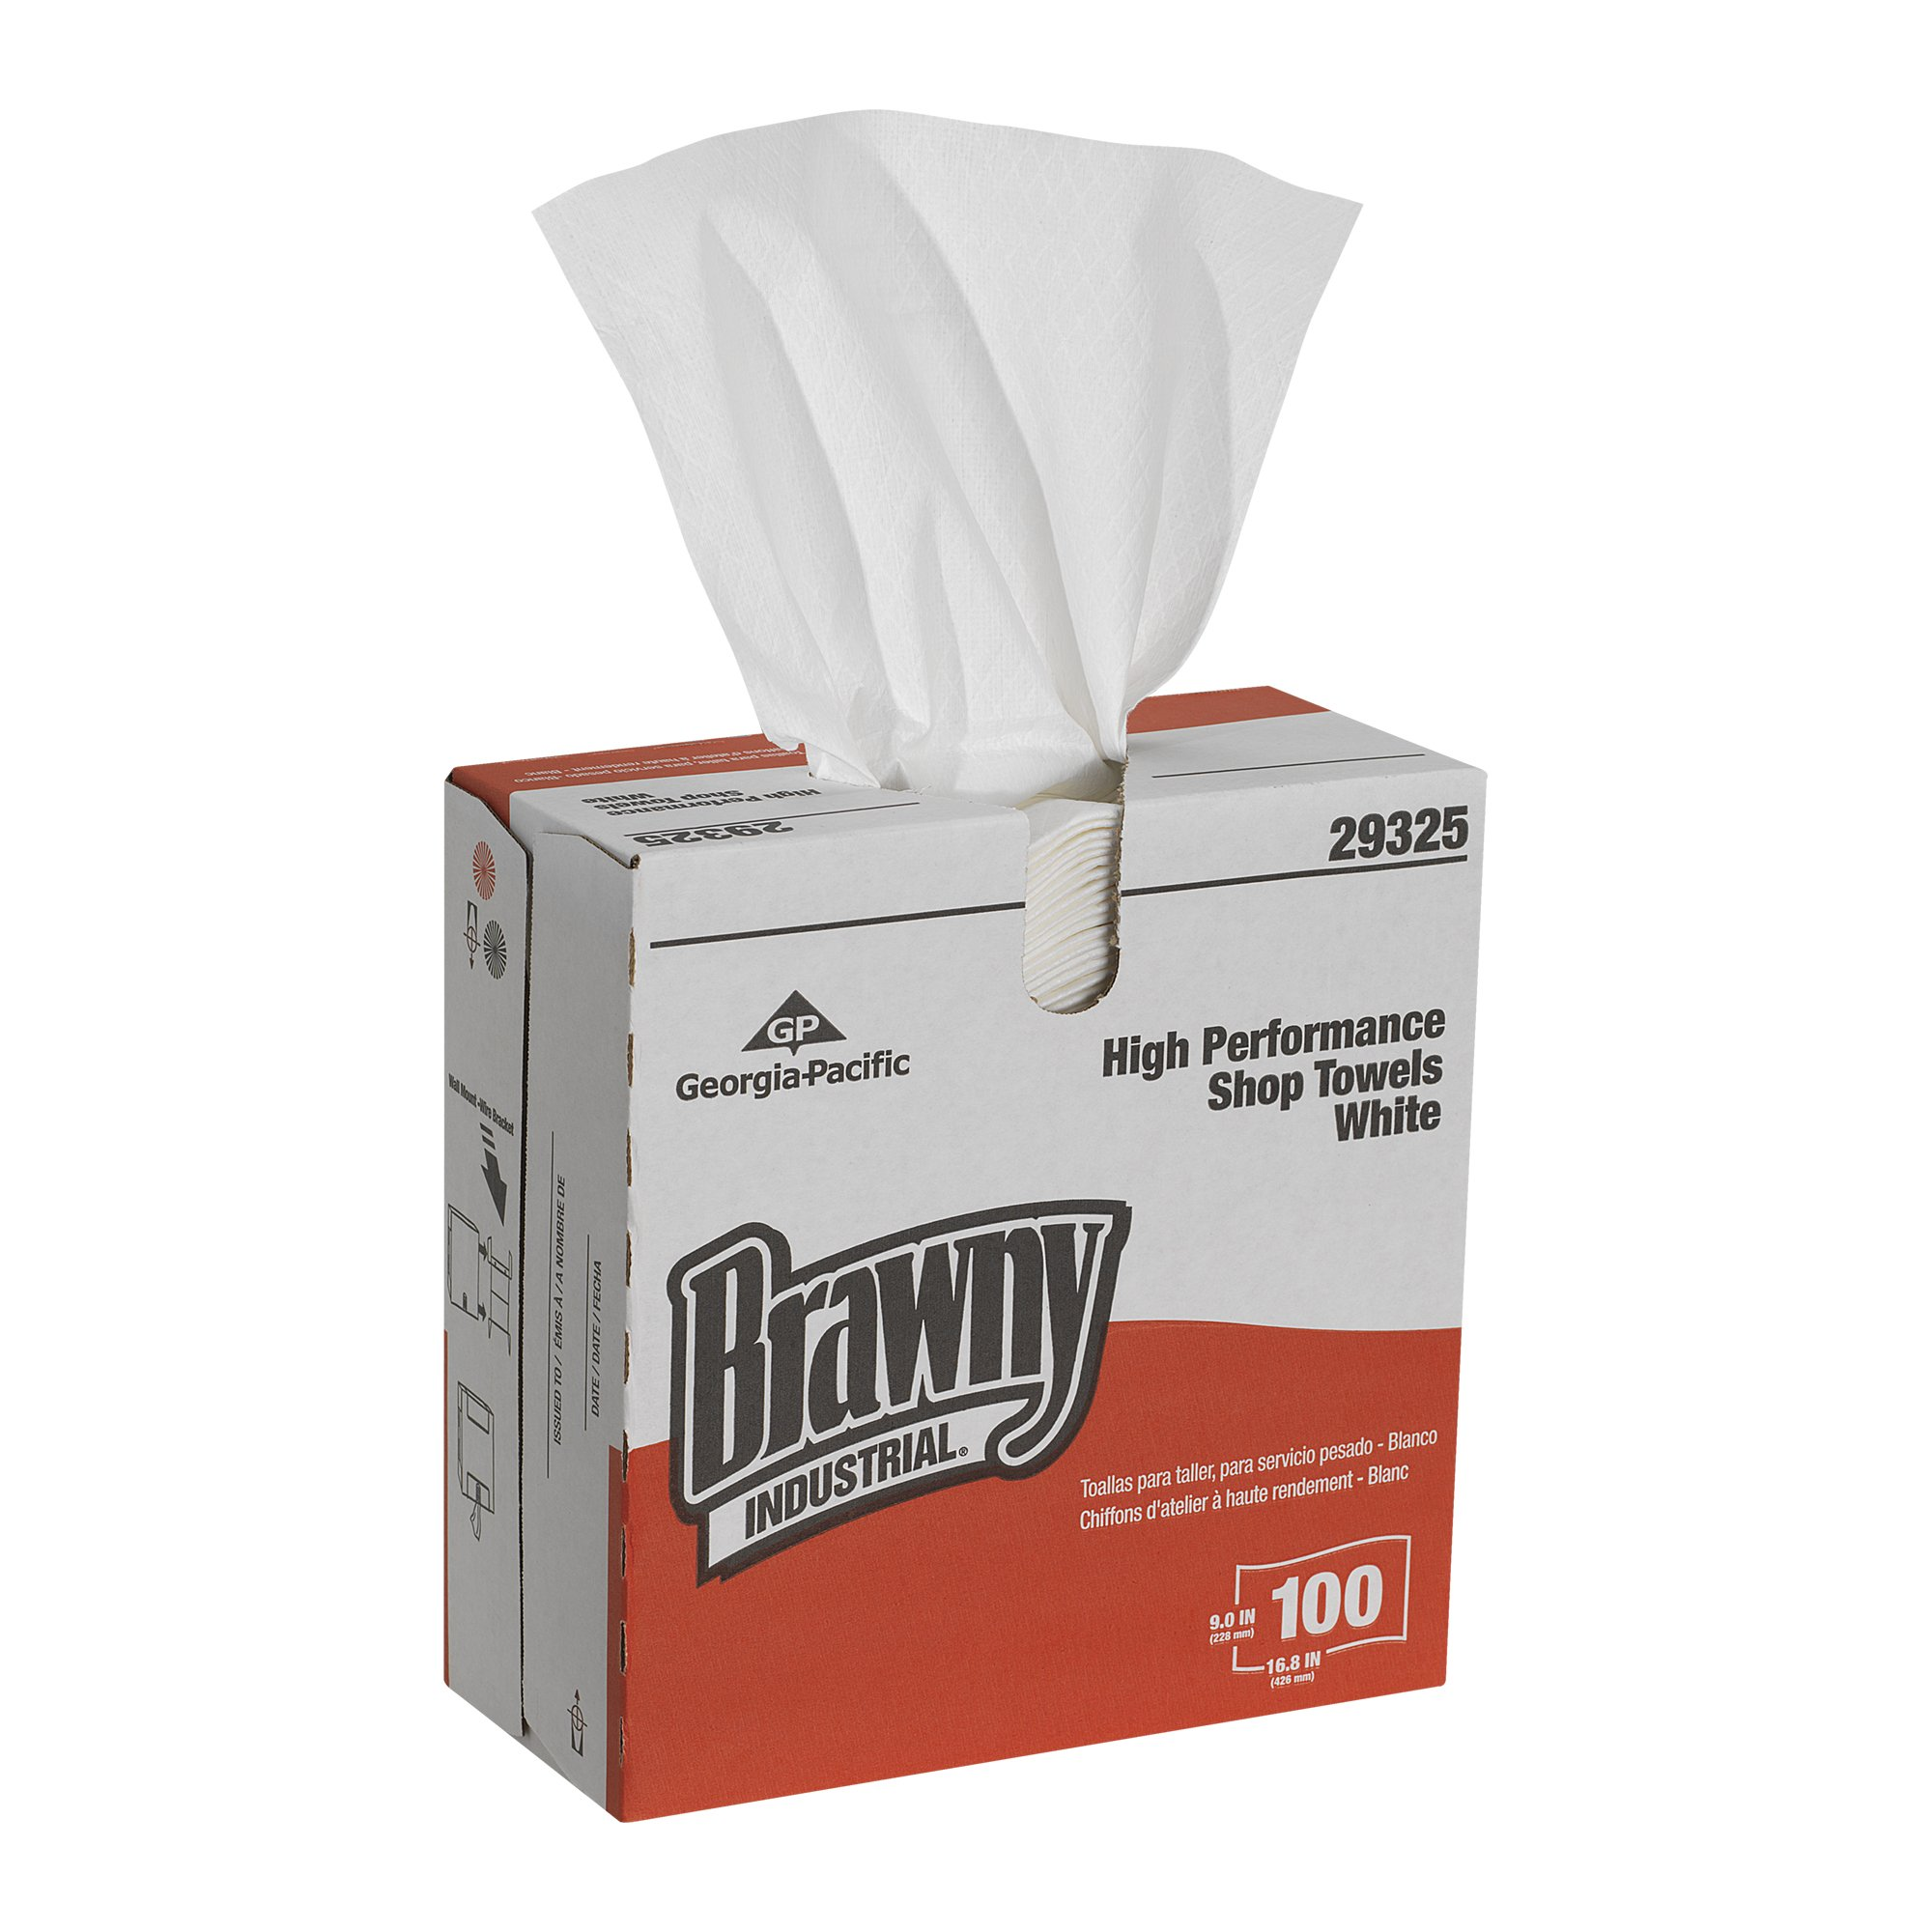 Brawny Industrial GP Pro Brawny Industrial H800 HEF Disposable Shop Towels, 29325, 100 Wipers Per Box (10 boxes Per Case), White